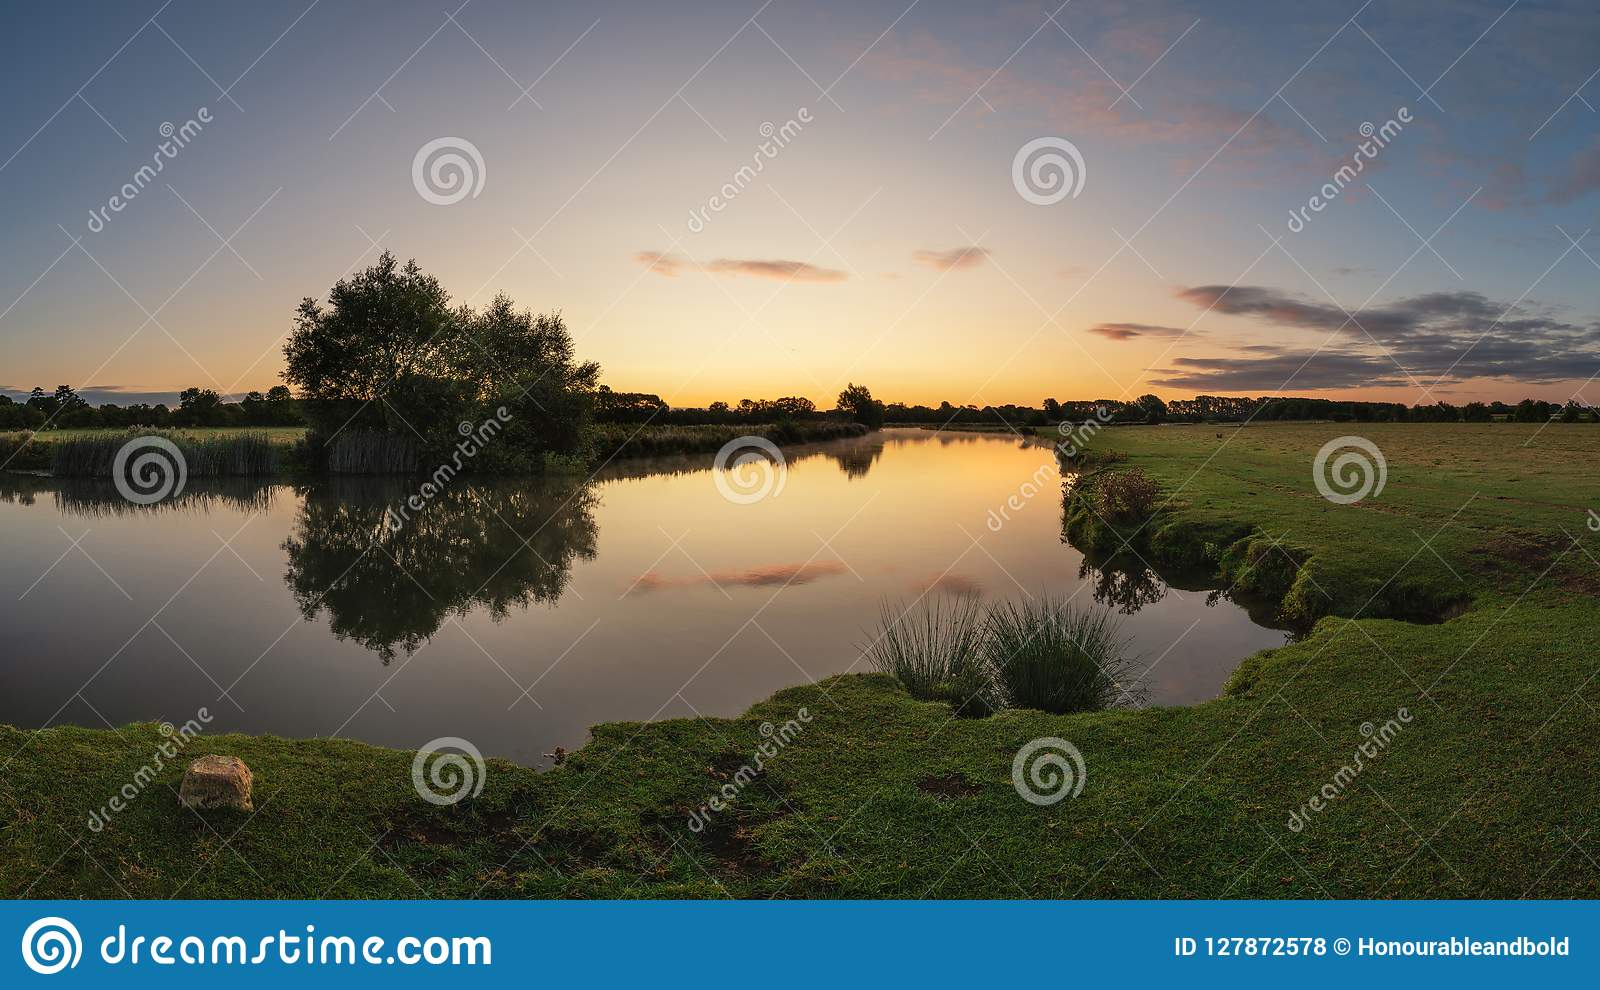 Beautiful dawn landscape image of River Thames at Lechlade-on-Thames